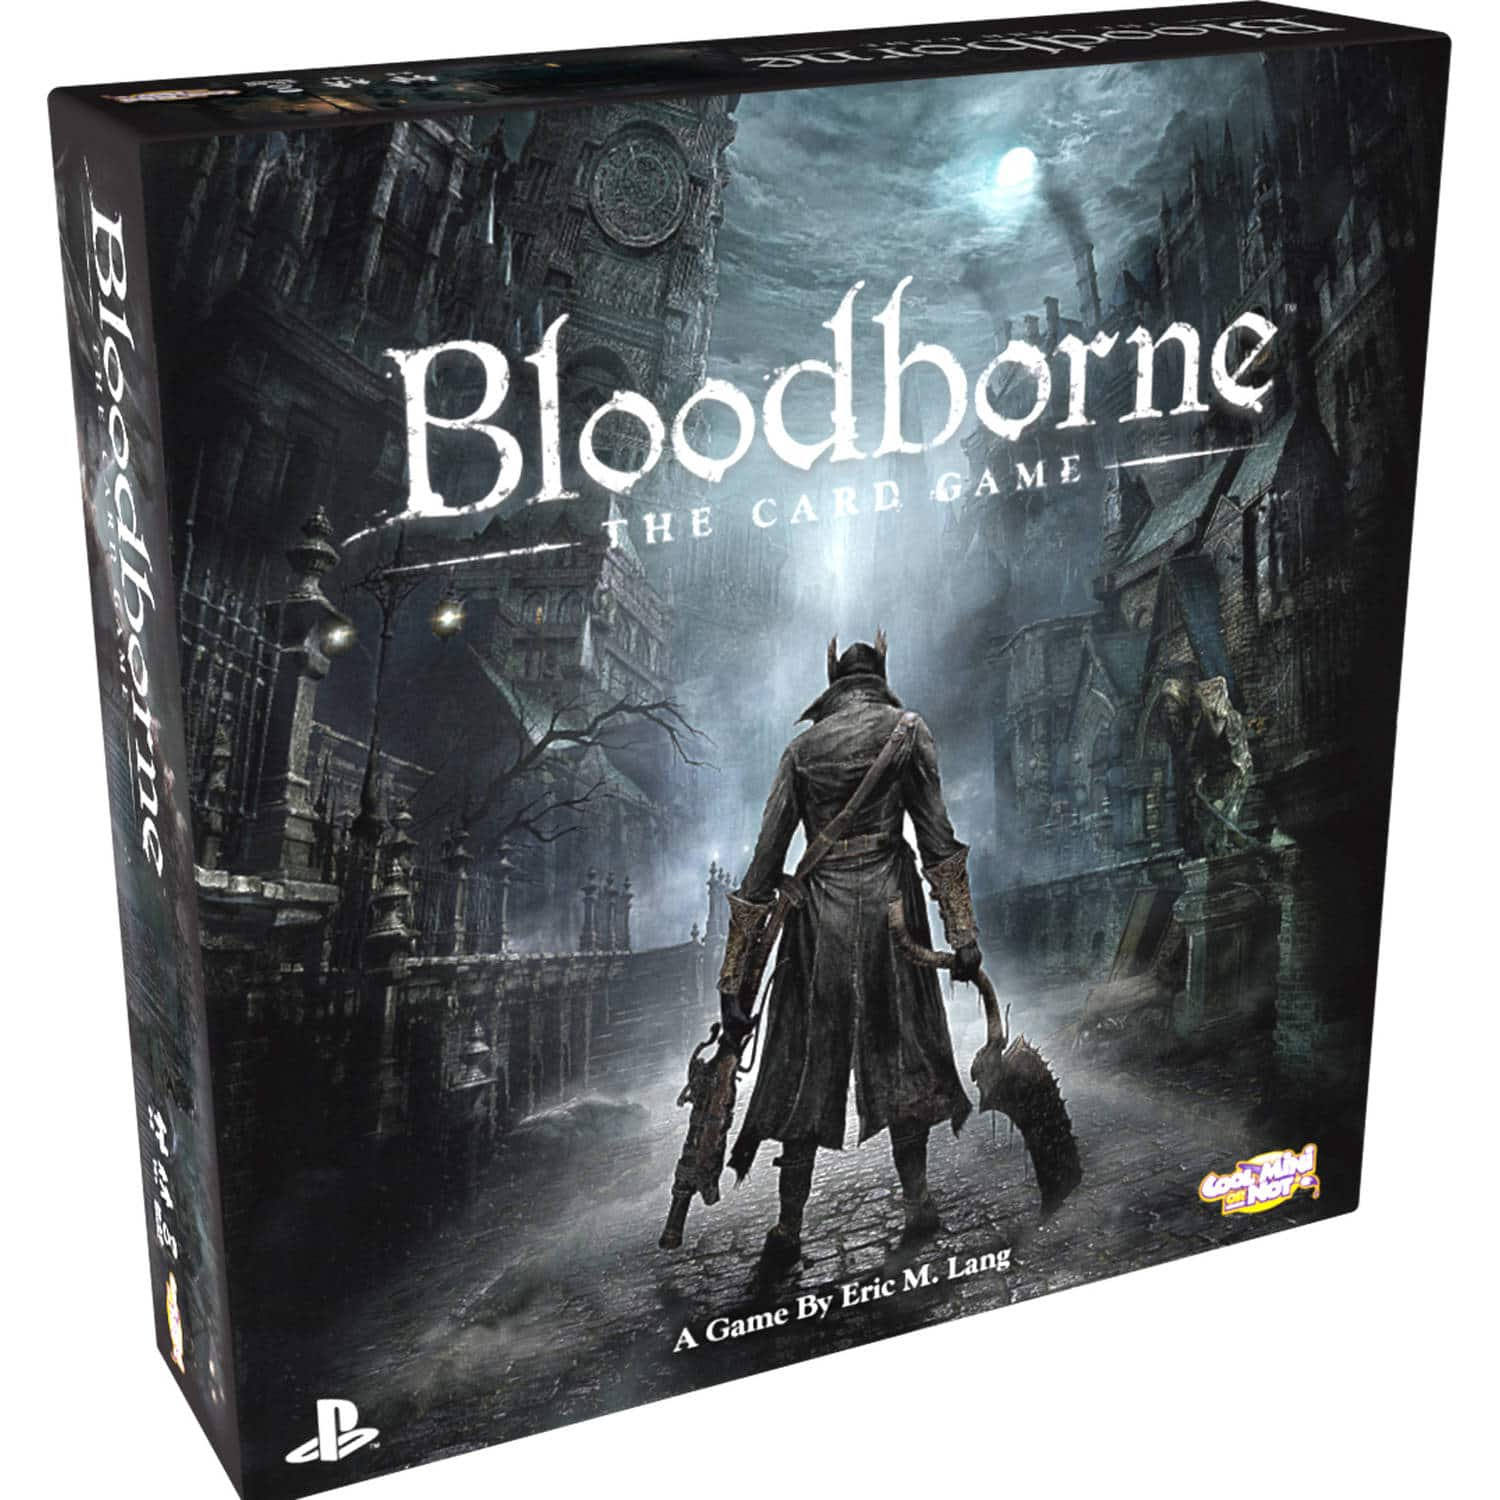 Cool Mini or Not Bloodborne: The Card Game for $17.47